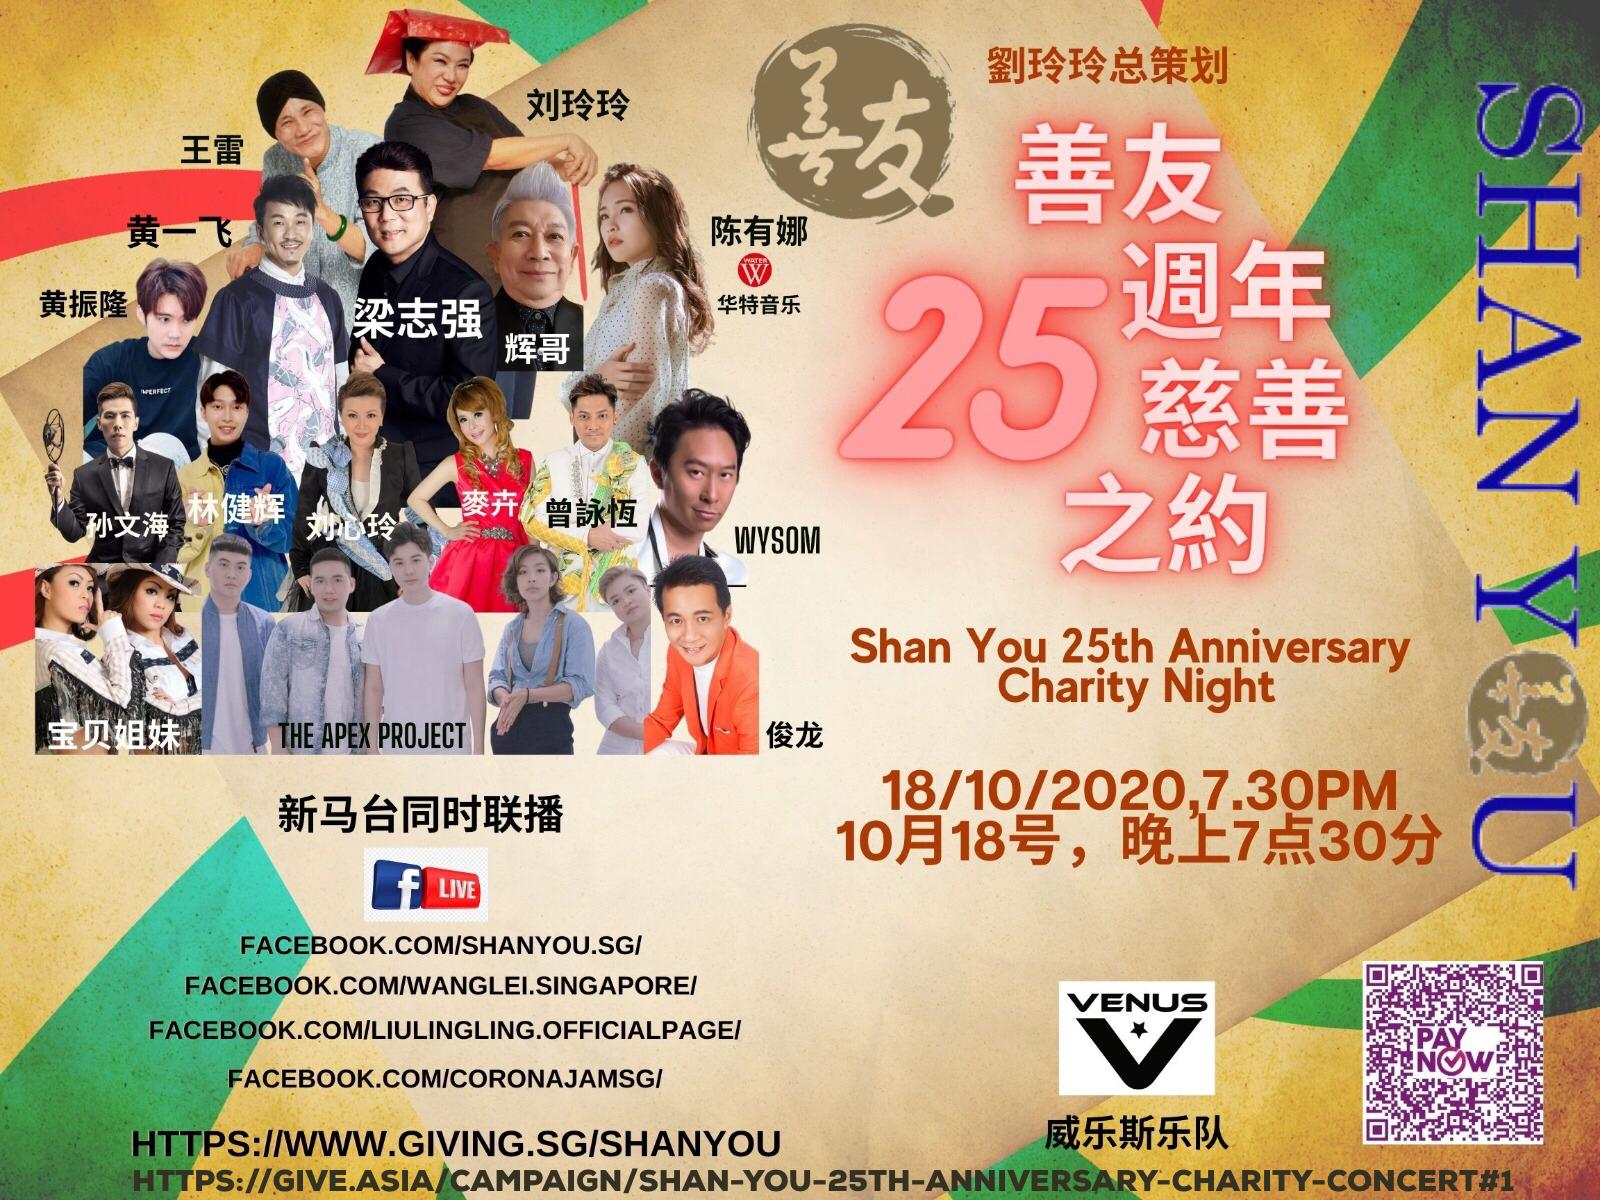 Shan You 25th Anniversary Charity Night